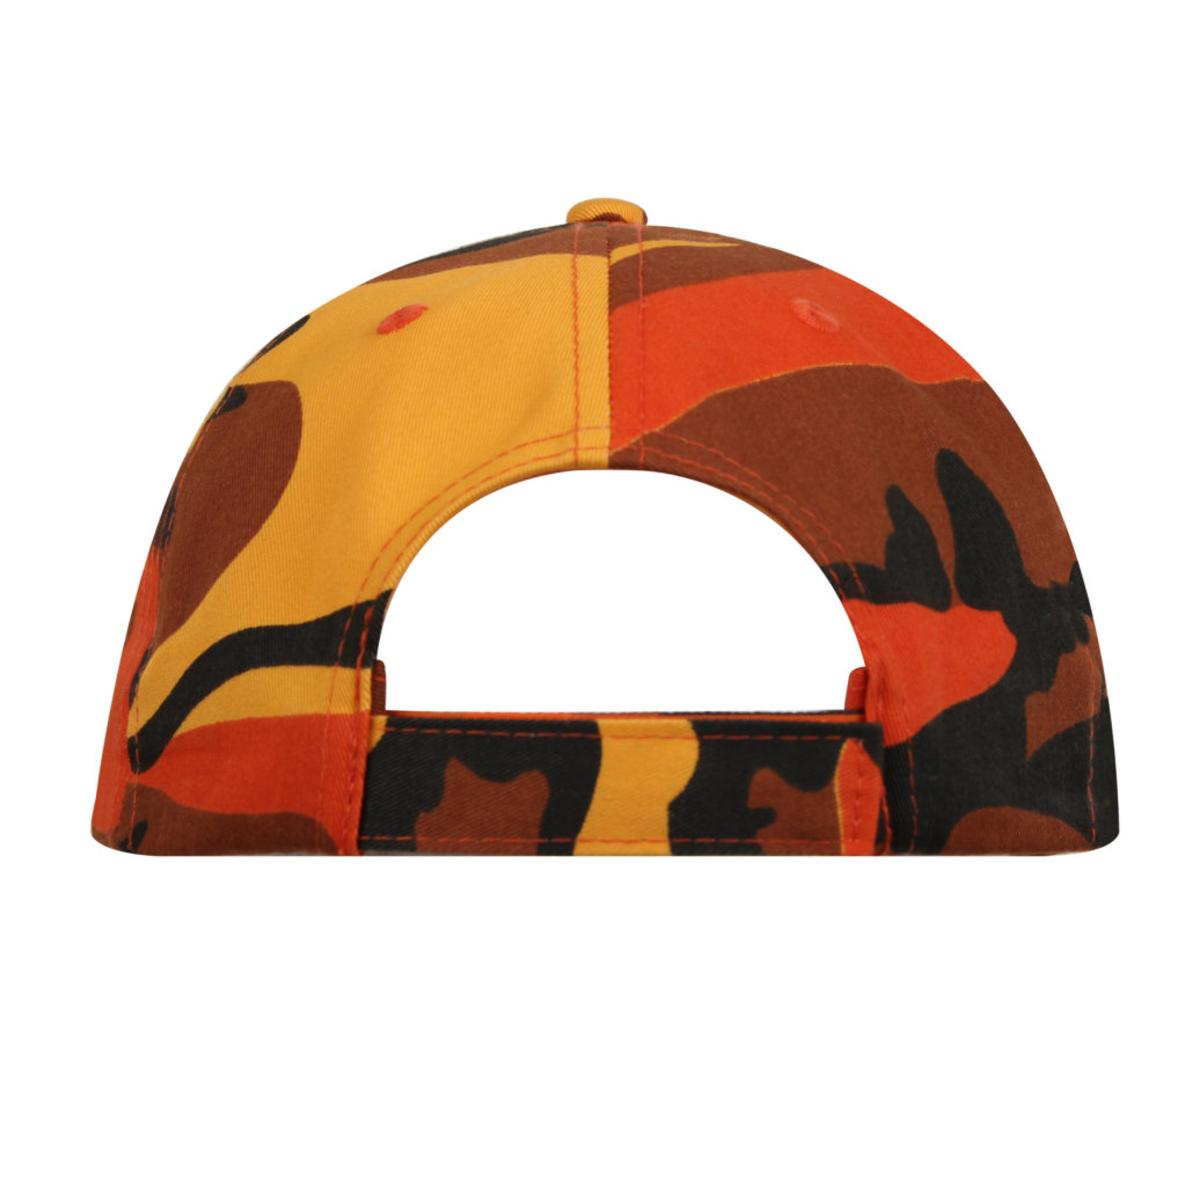 d06ea9e8 Rothco Supreme Low Profile Camouflage Baseball Cap, Tactical Hat | eBay